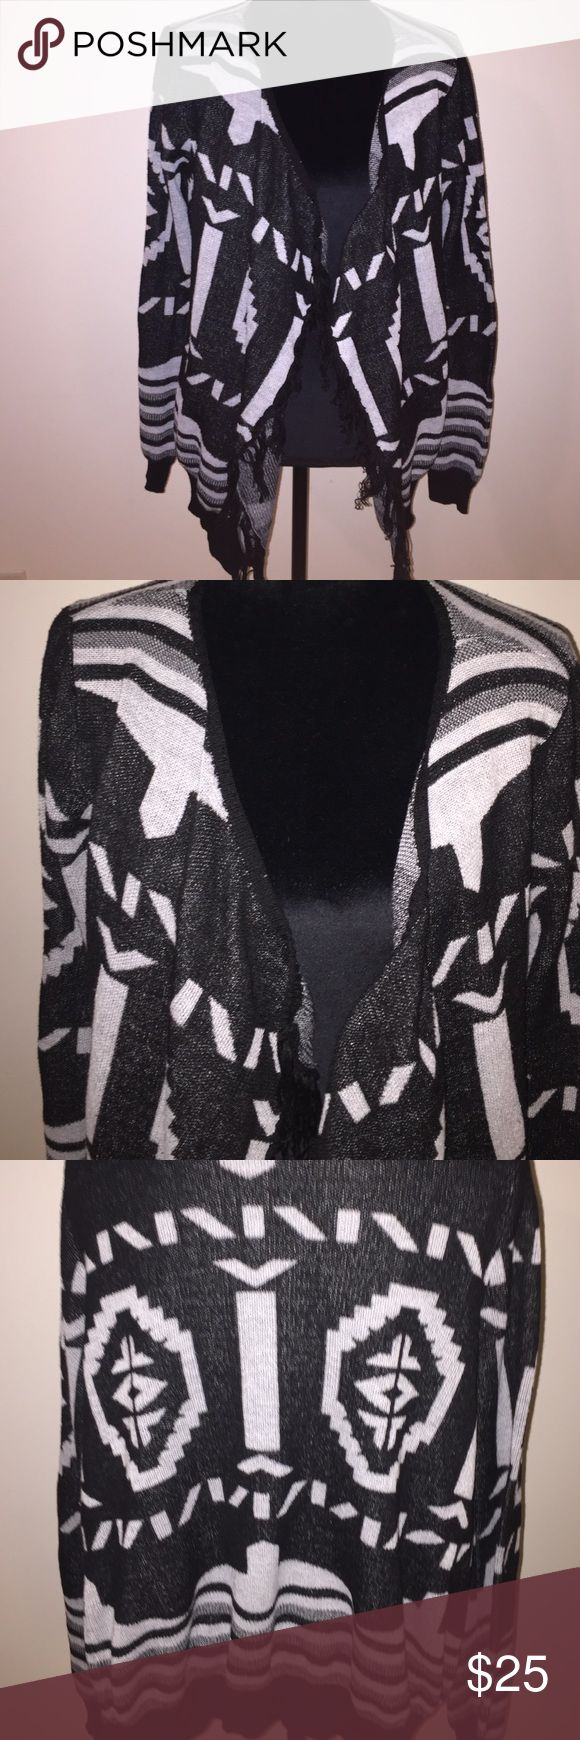 Aztec print cardigan Aztec print open front cardigan- black, white & gray. Excellent used condition T/O Sweaters Cardigans